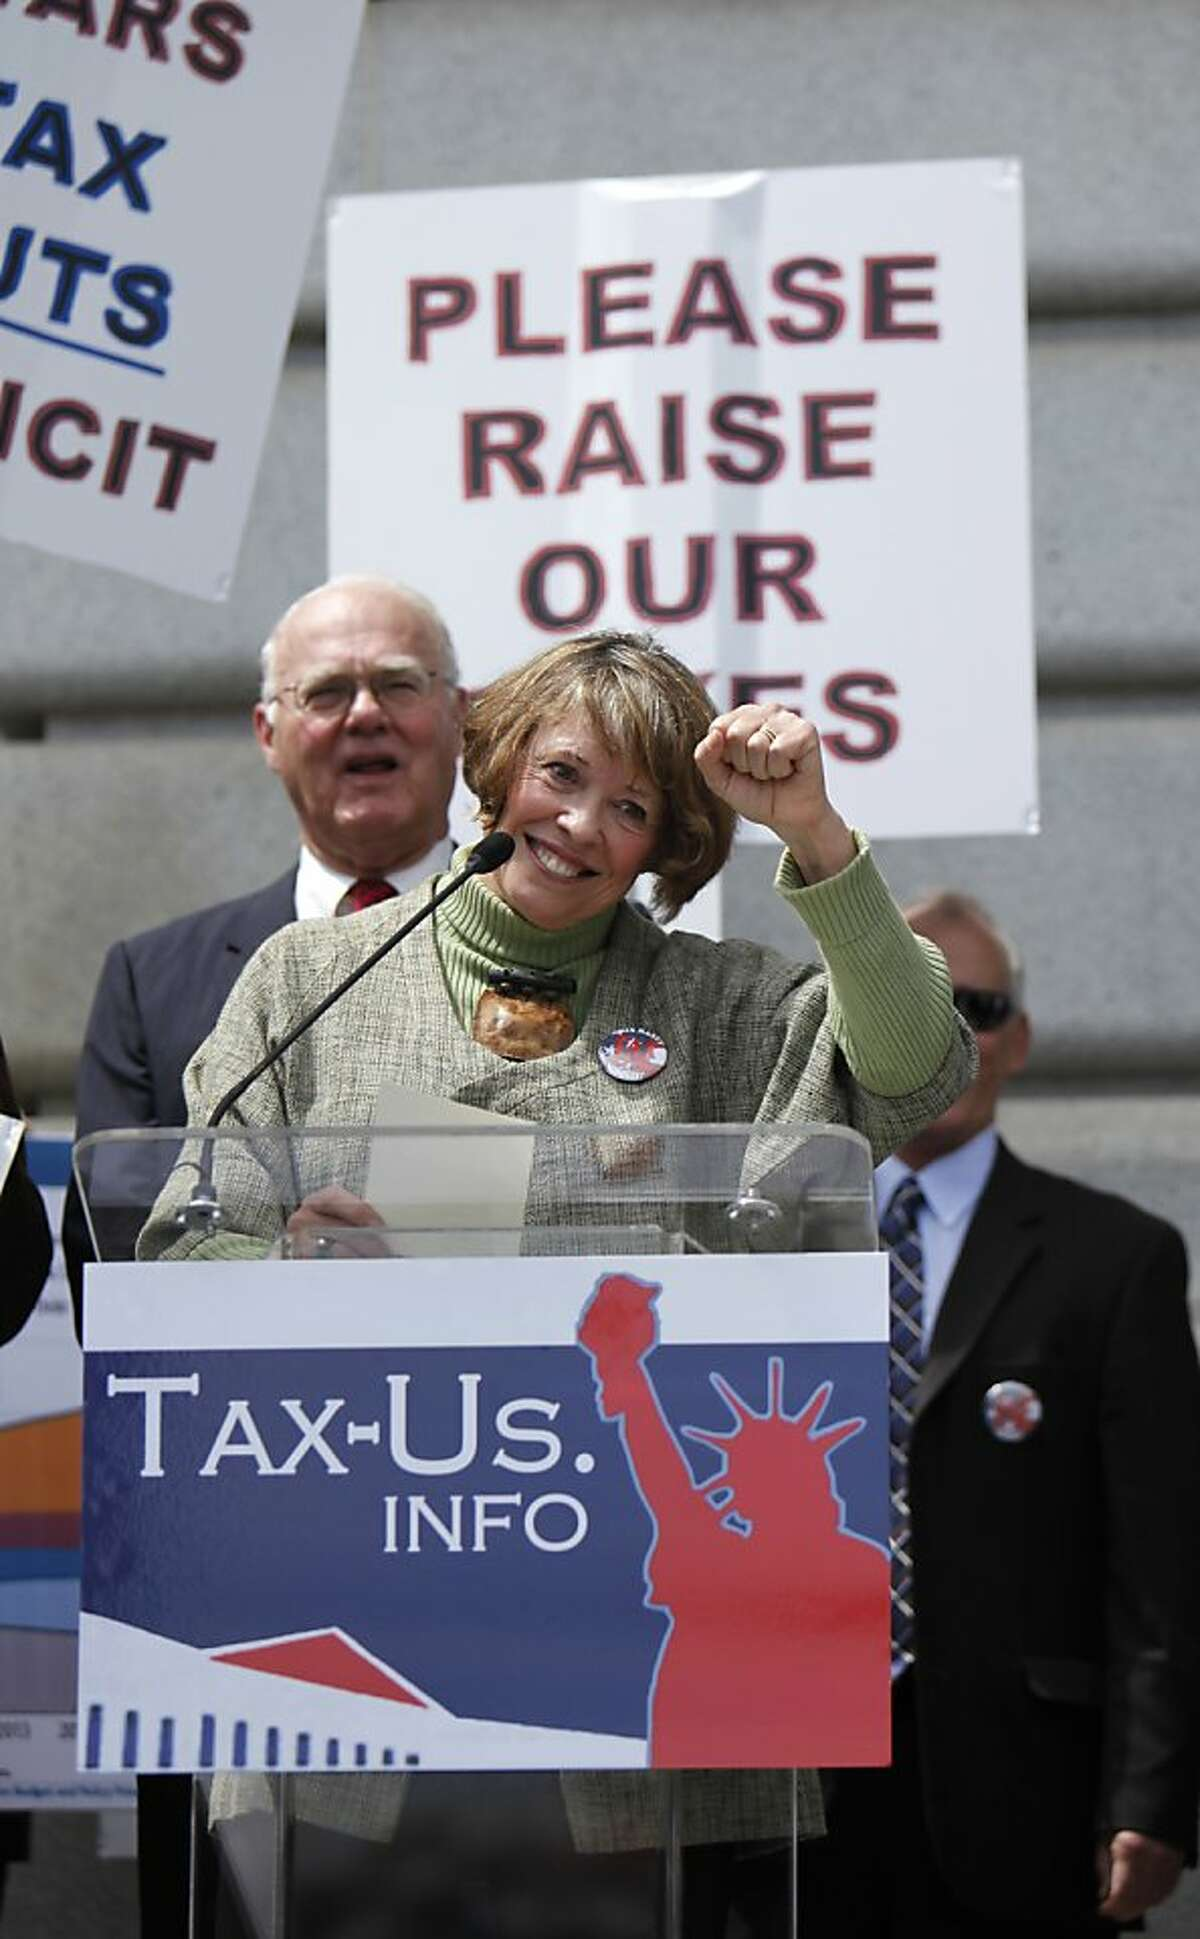 Judy O'Shea, Biotech Investor/Advisor is a key speaker at the rally at City Hall on Tax day, in San Francisco, California on Tuesday, April 17, 2012.